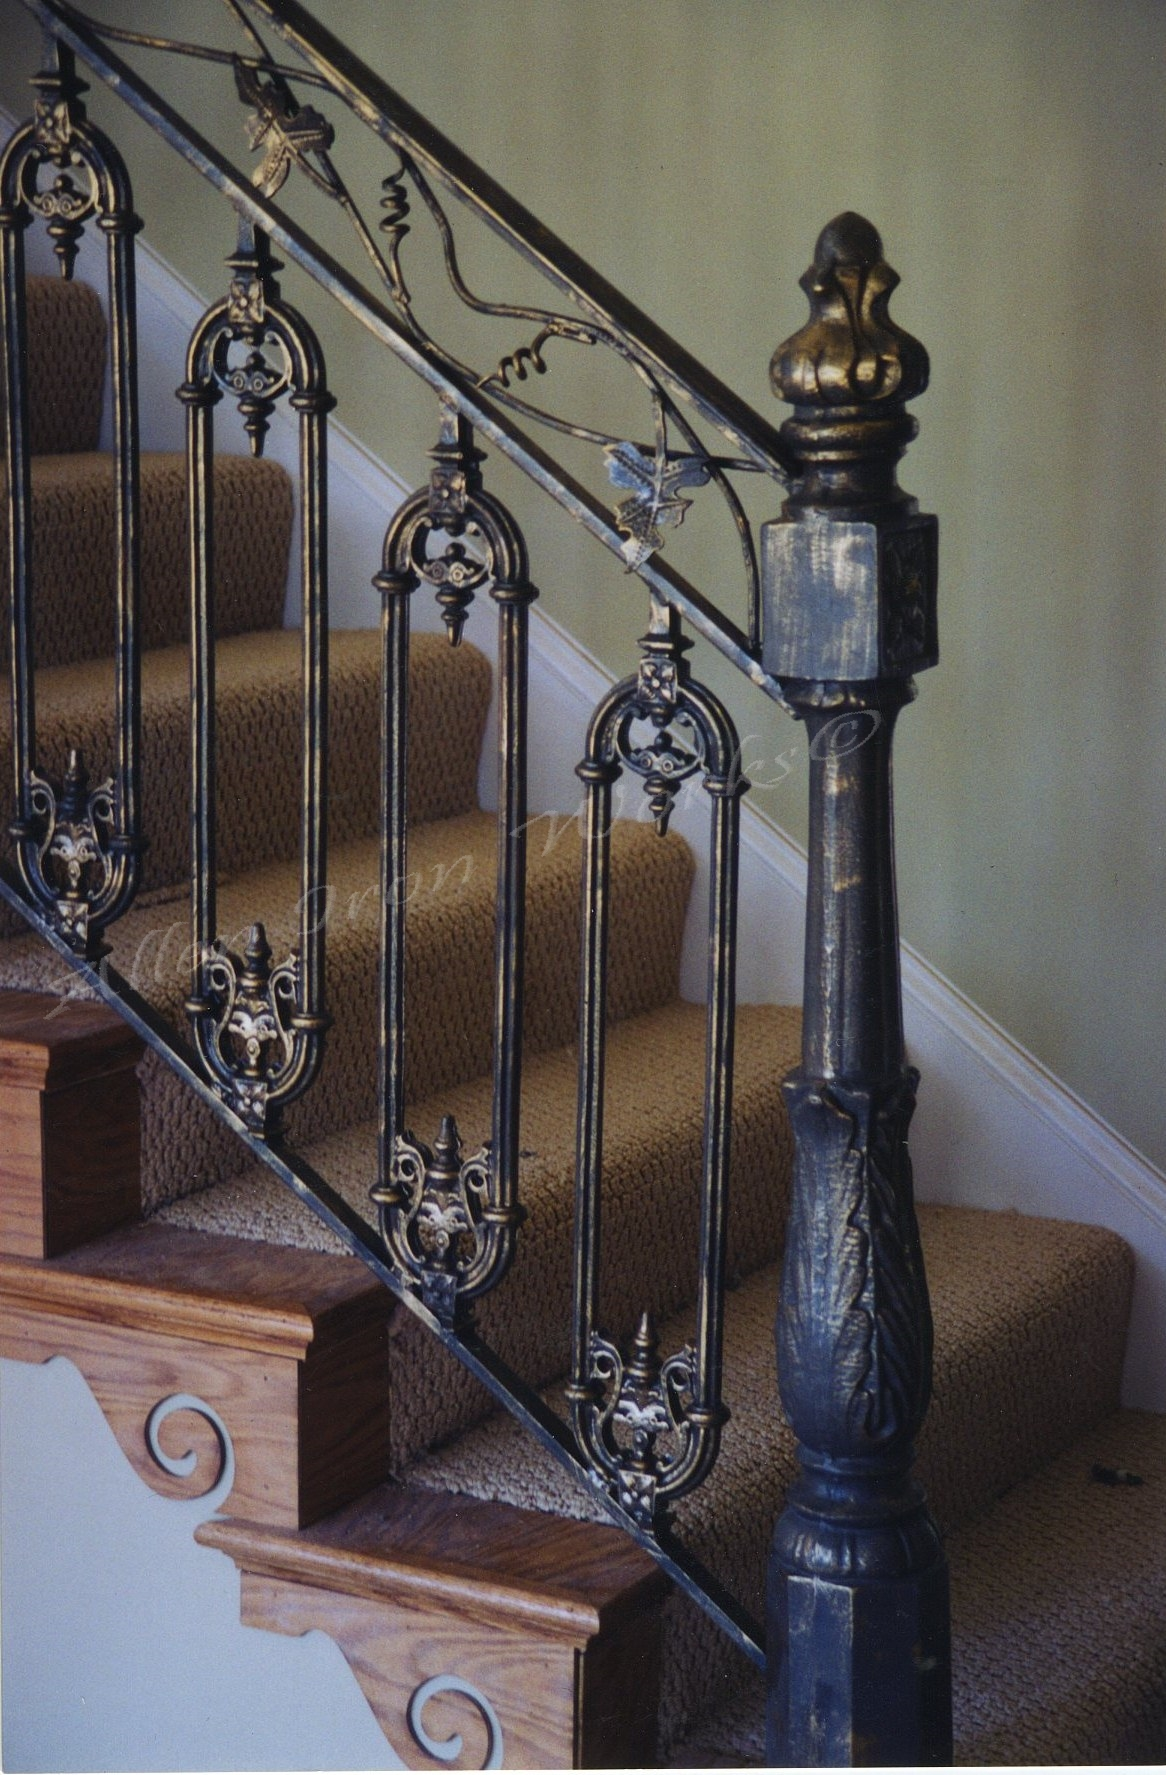 cast-iron-decorative-designs-with-vines-newel-posts-handrail-birmingham-al